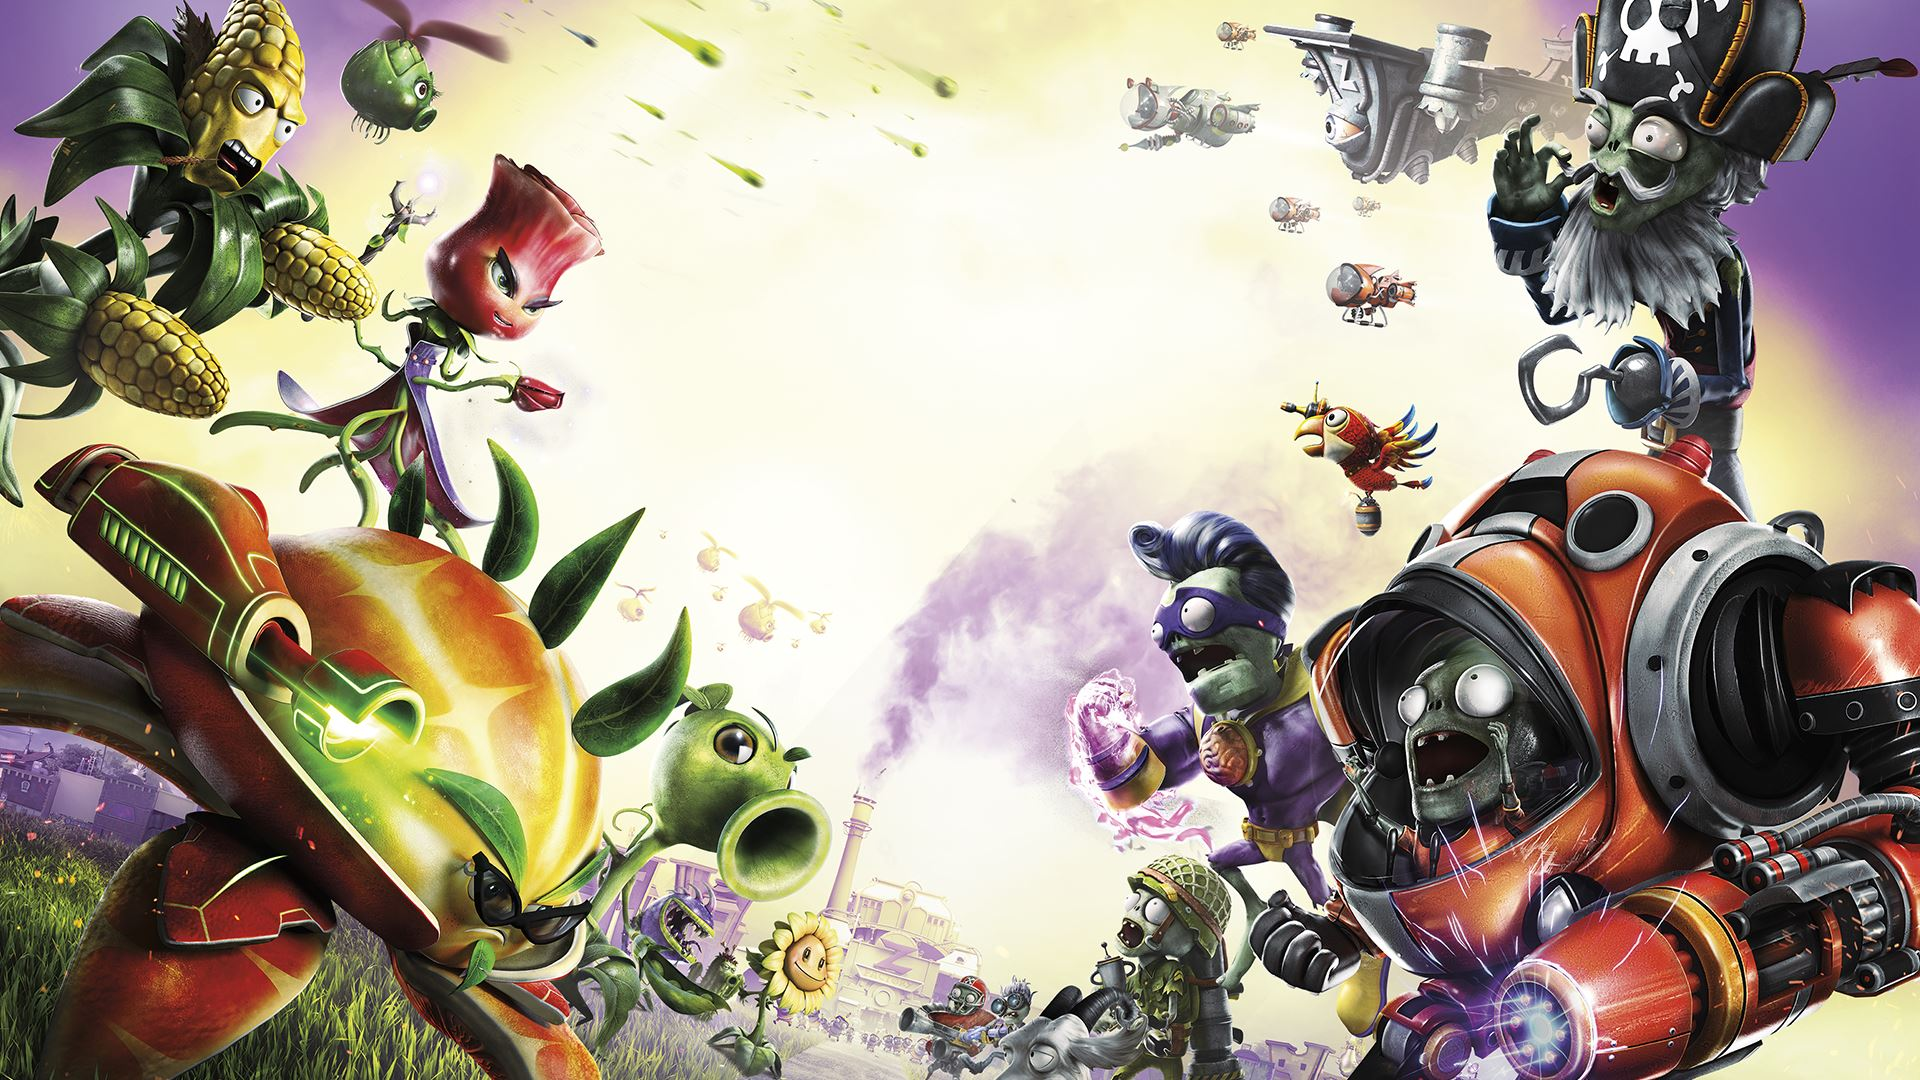 Plants Vs Zombies Garden Warfare 2 Solo Mode Trailer Revealed Attack Of The Fanboy